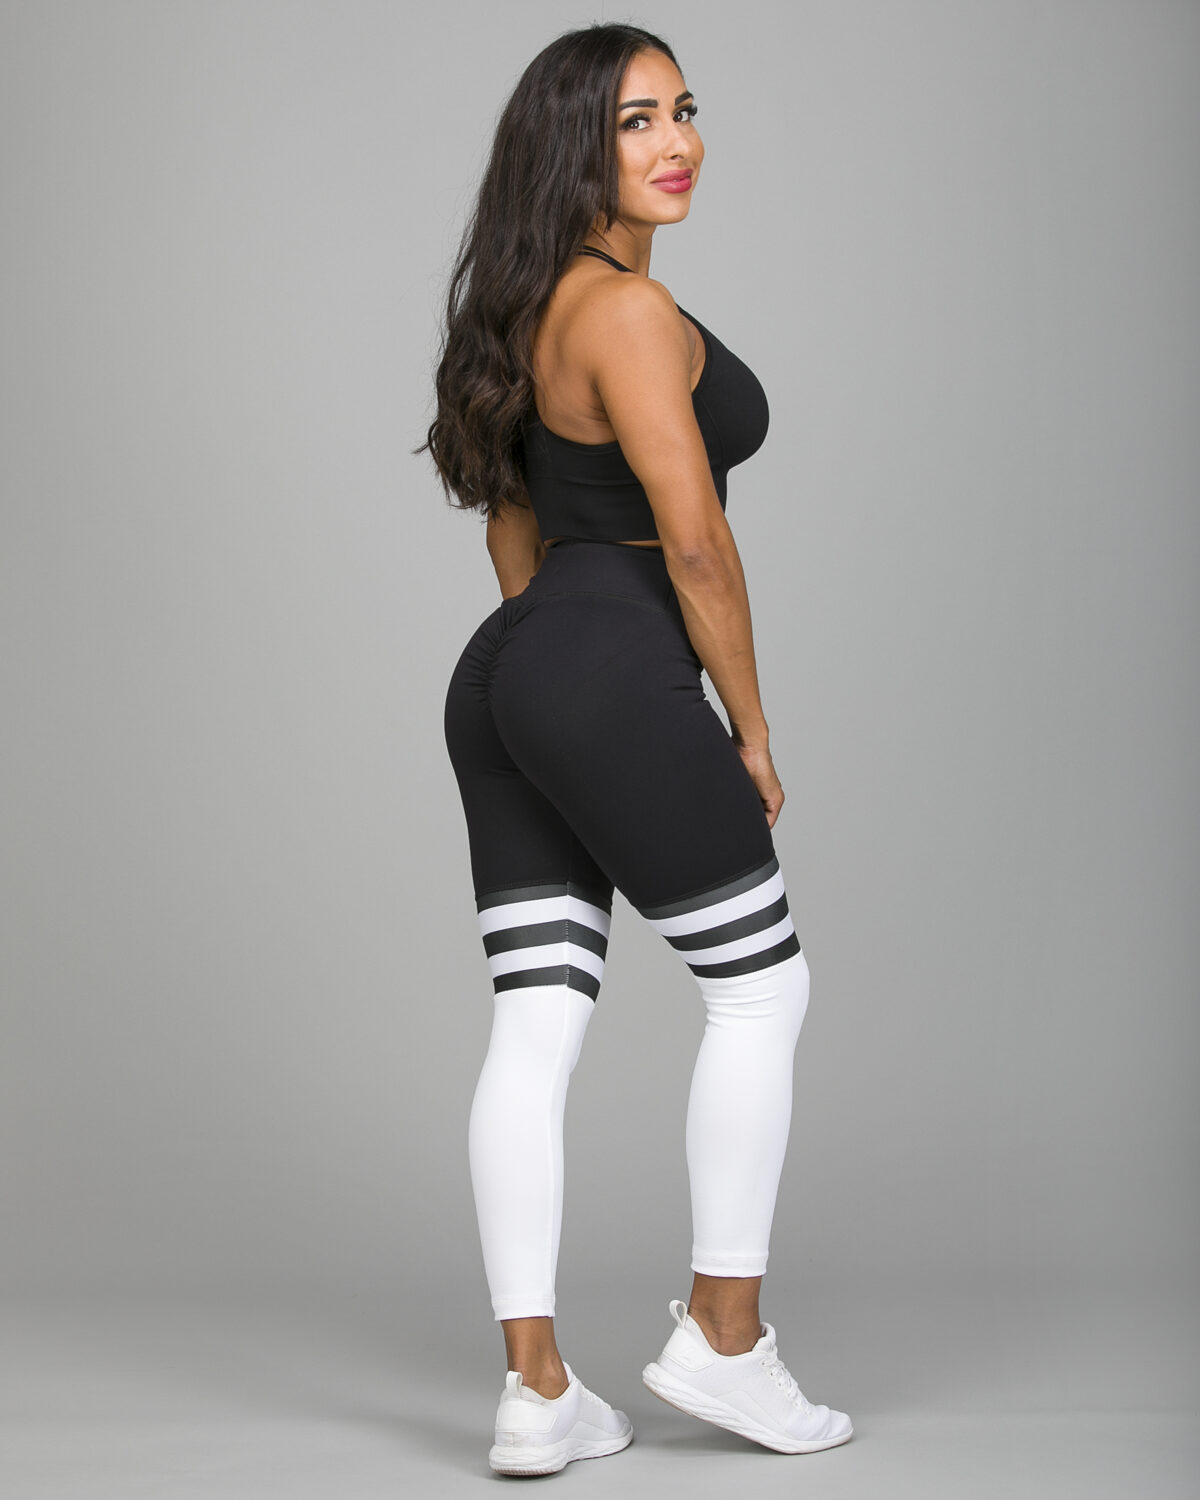 ABS2B-Fitness-High-Knee-Stripes-Black.White9_-1200×1500